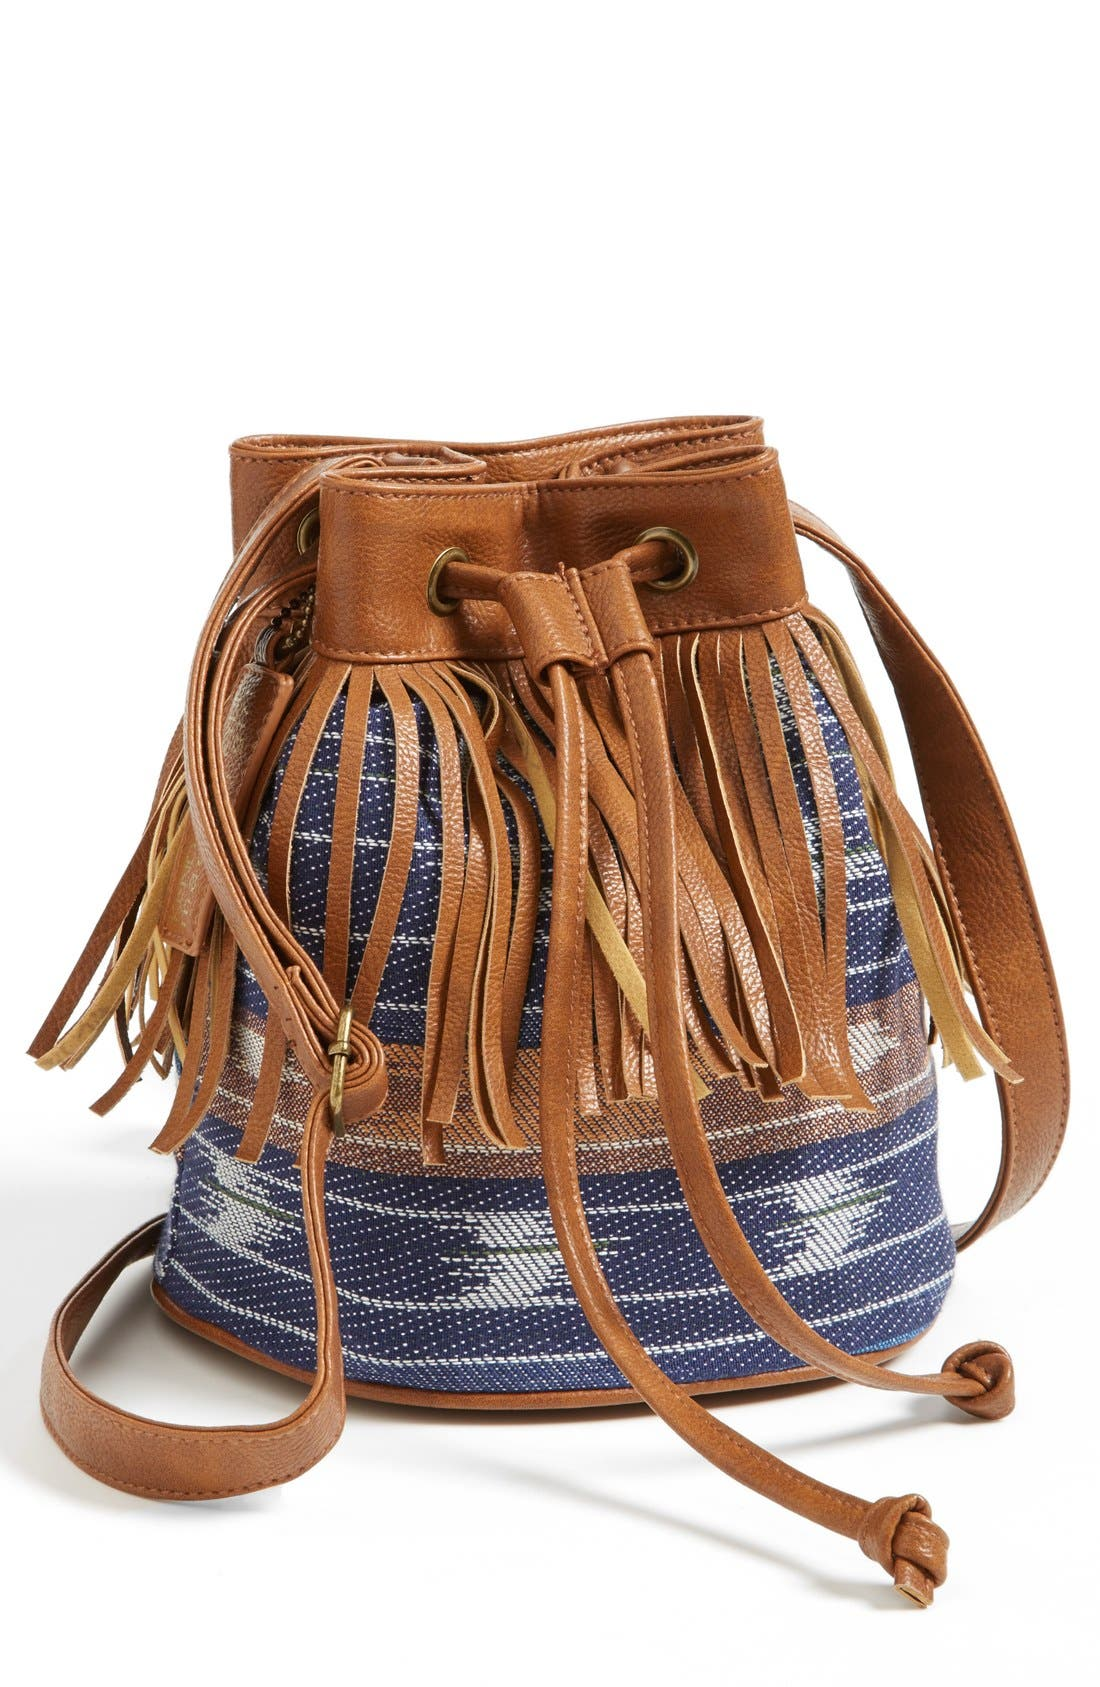 Alternate Image 1 Selected - KENDALL + KYLIE Madden Girl Fringed Fabric Bucket Bag (Juniors)